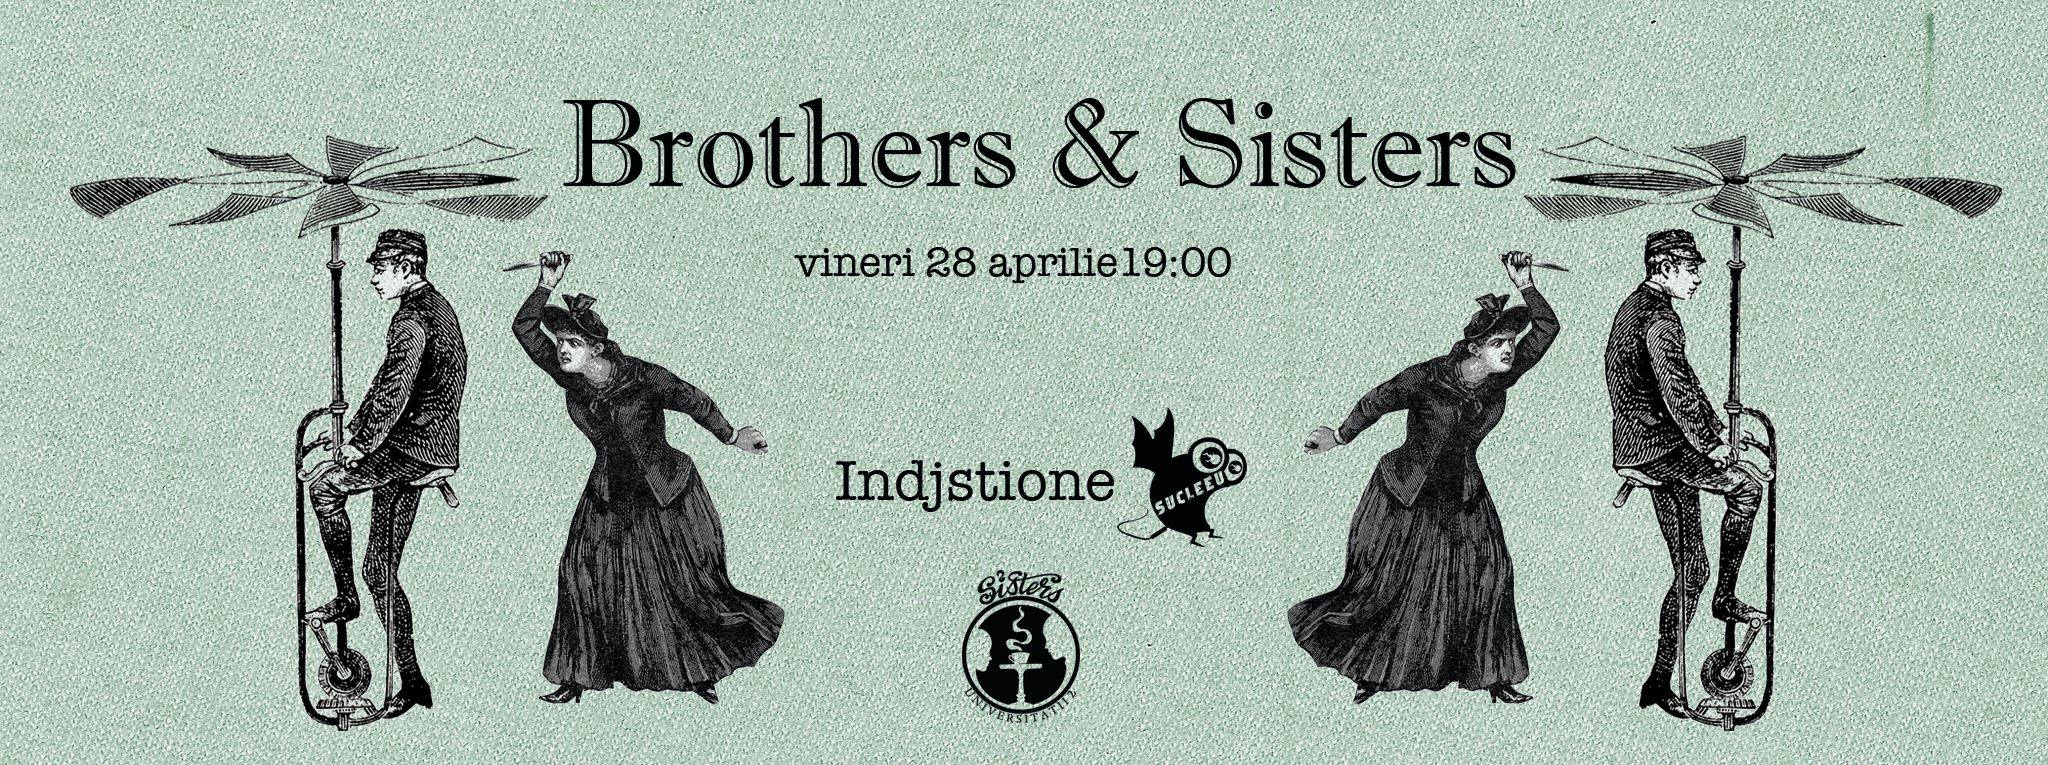 Brothers & Sisters @ Sisters